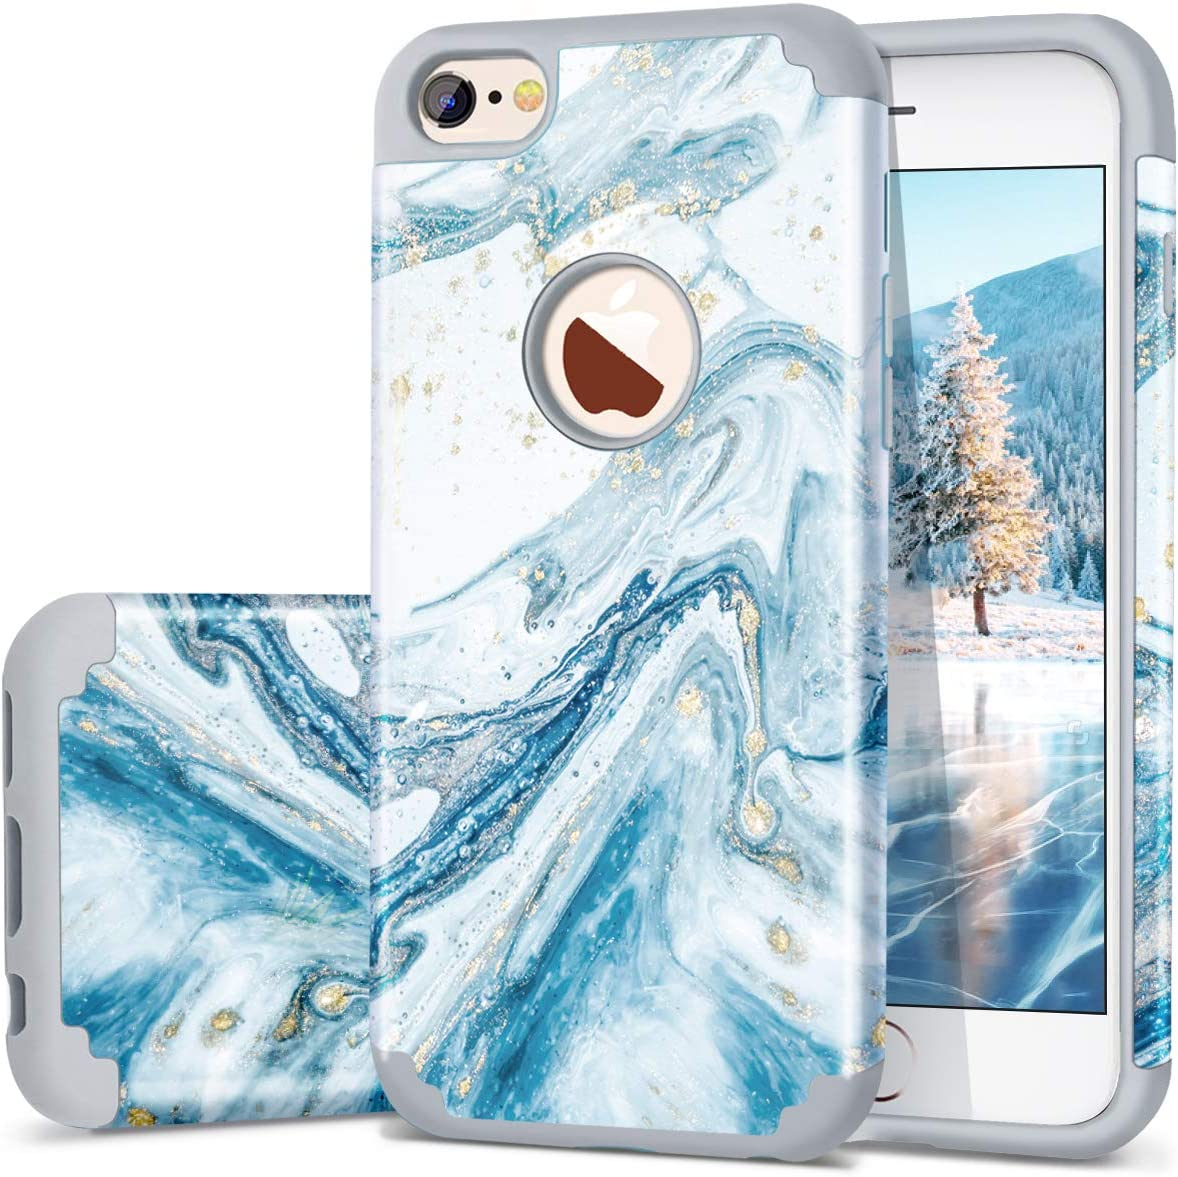 Fingic iPhone 6 6S Case, Marble Design Slim Case Glitter Bumper Hard PC Soft Rubber Anti-Scratch Shockproof Protective Phone Case Cover for Apple iPhone 6s iPhone 6 (4.7 inch) - Blue Marble